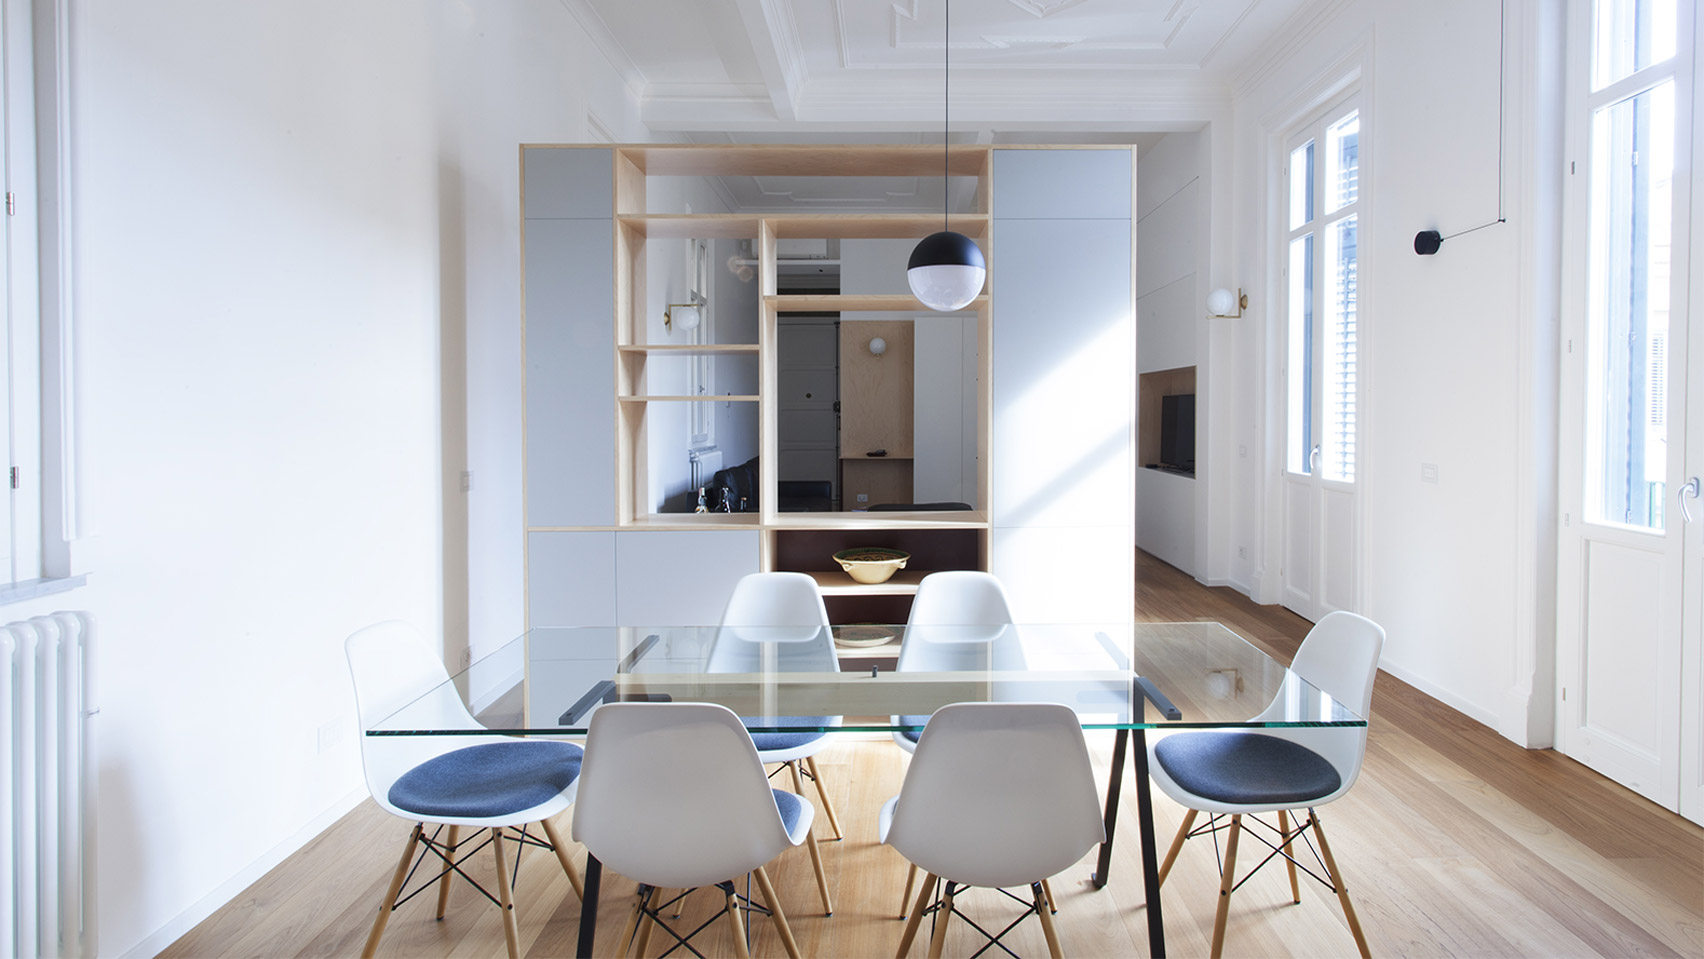 A white-walled dining room